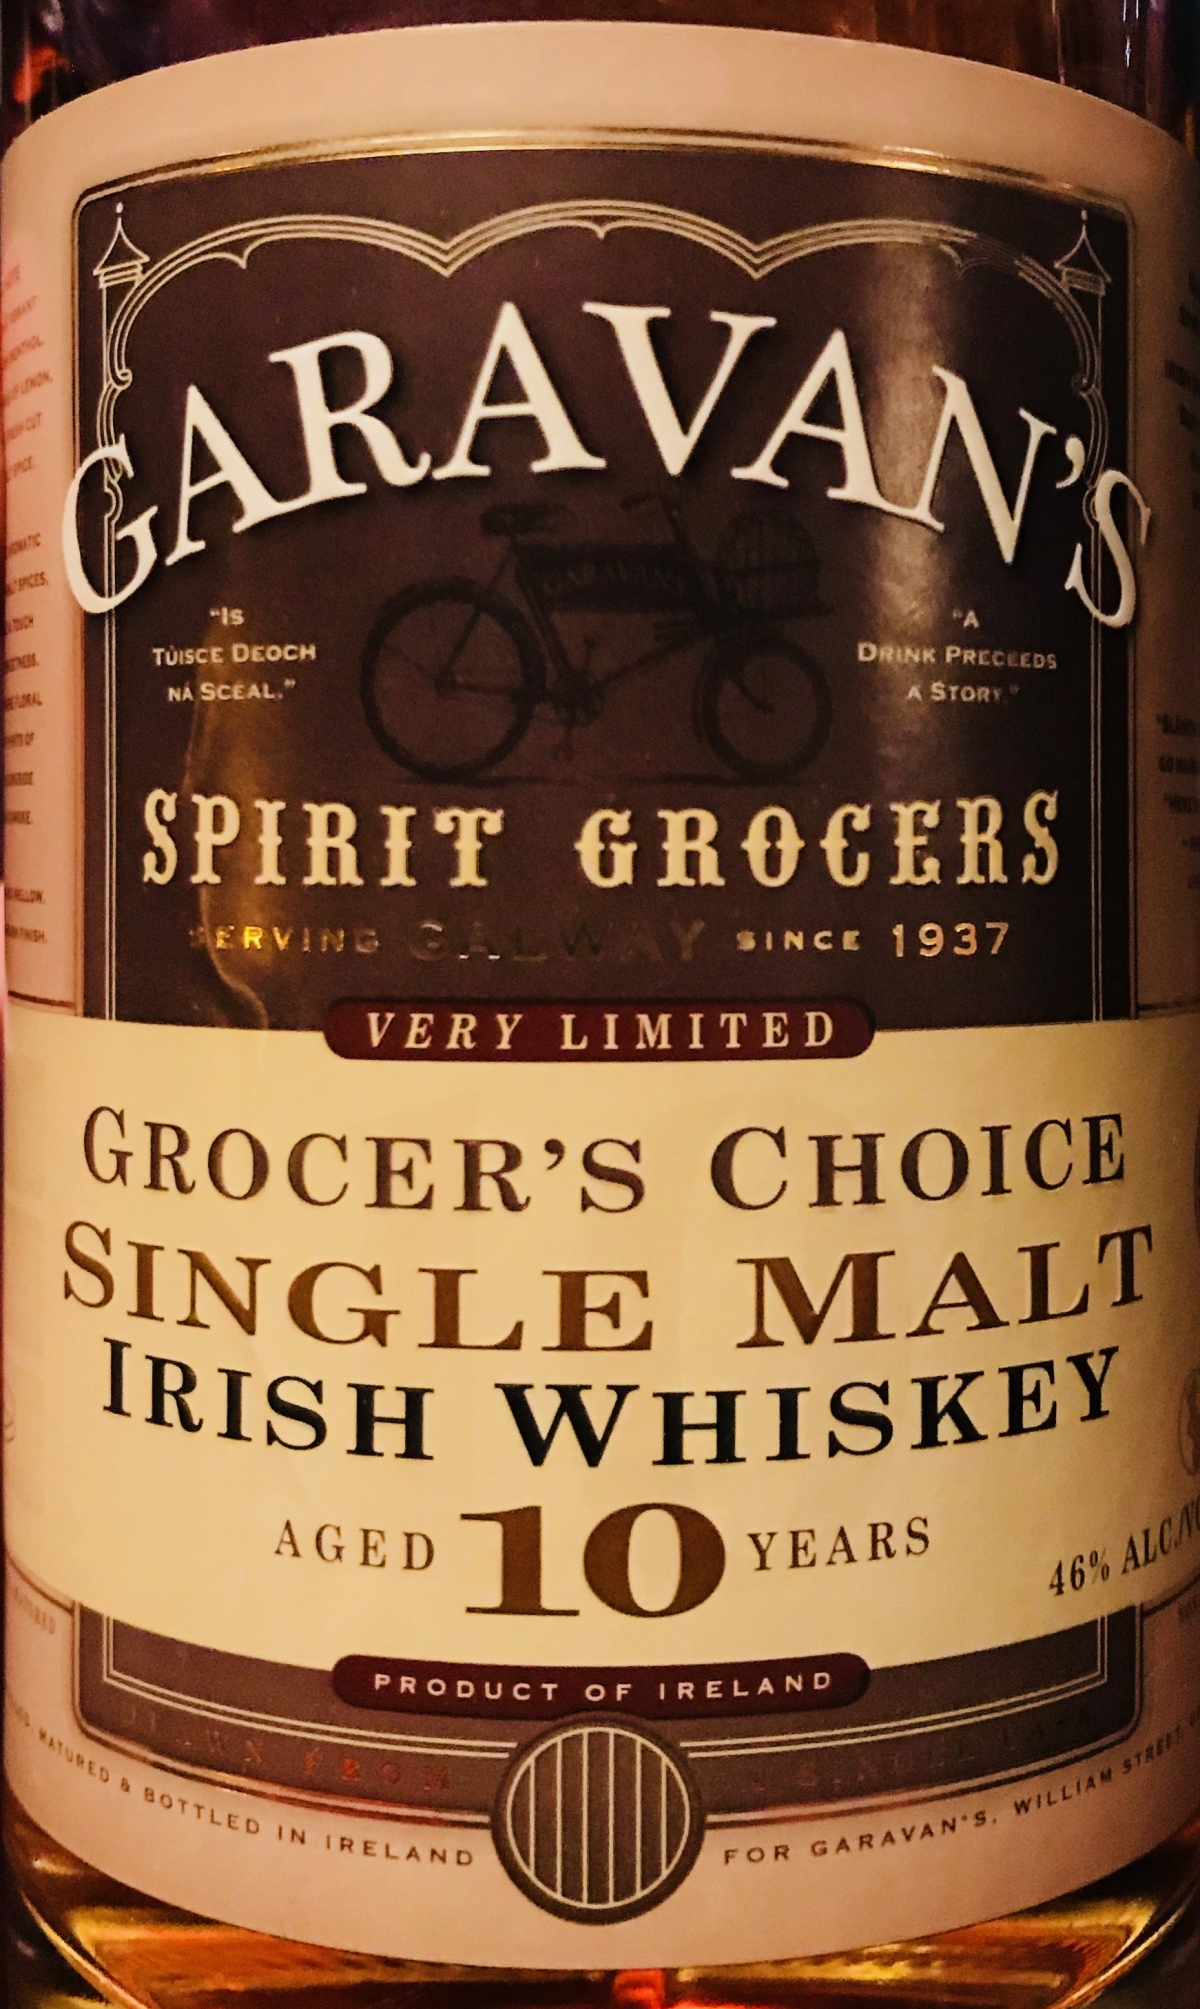 Garavan's Grocer's Choice 10yr old Single Malt